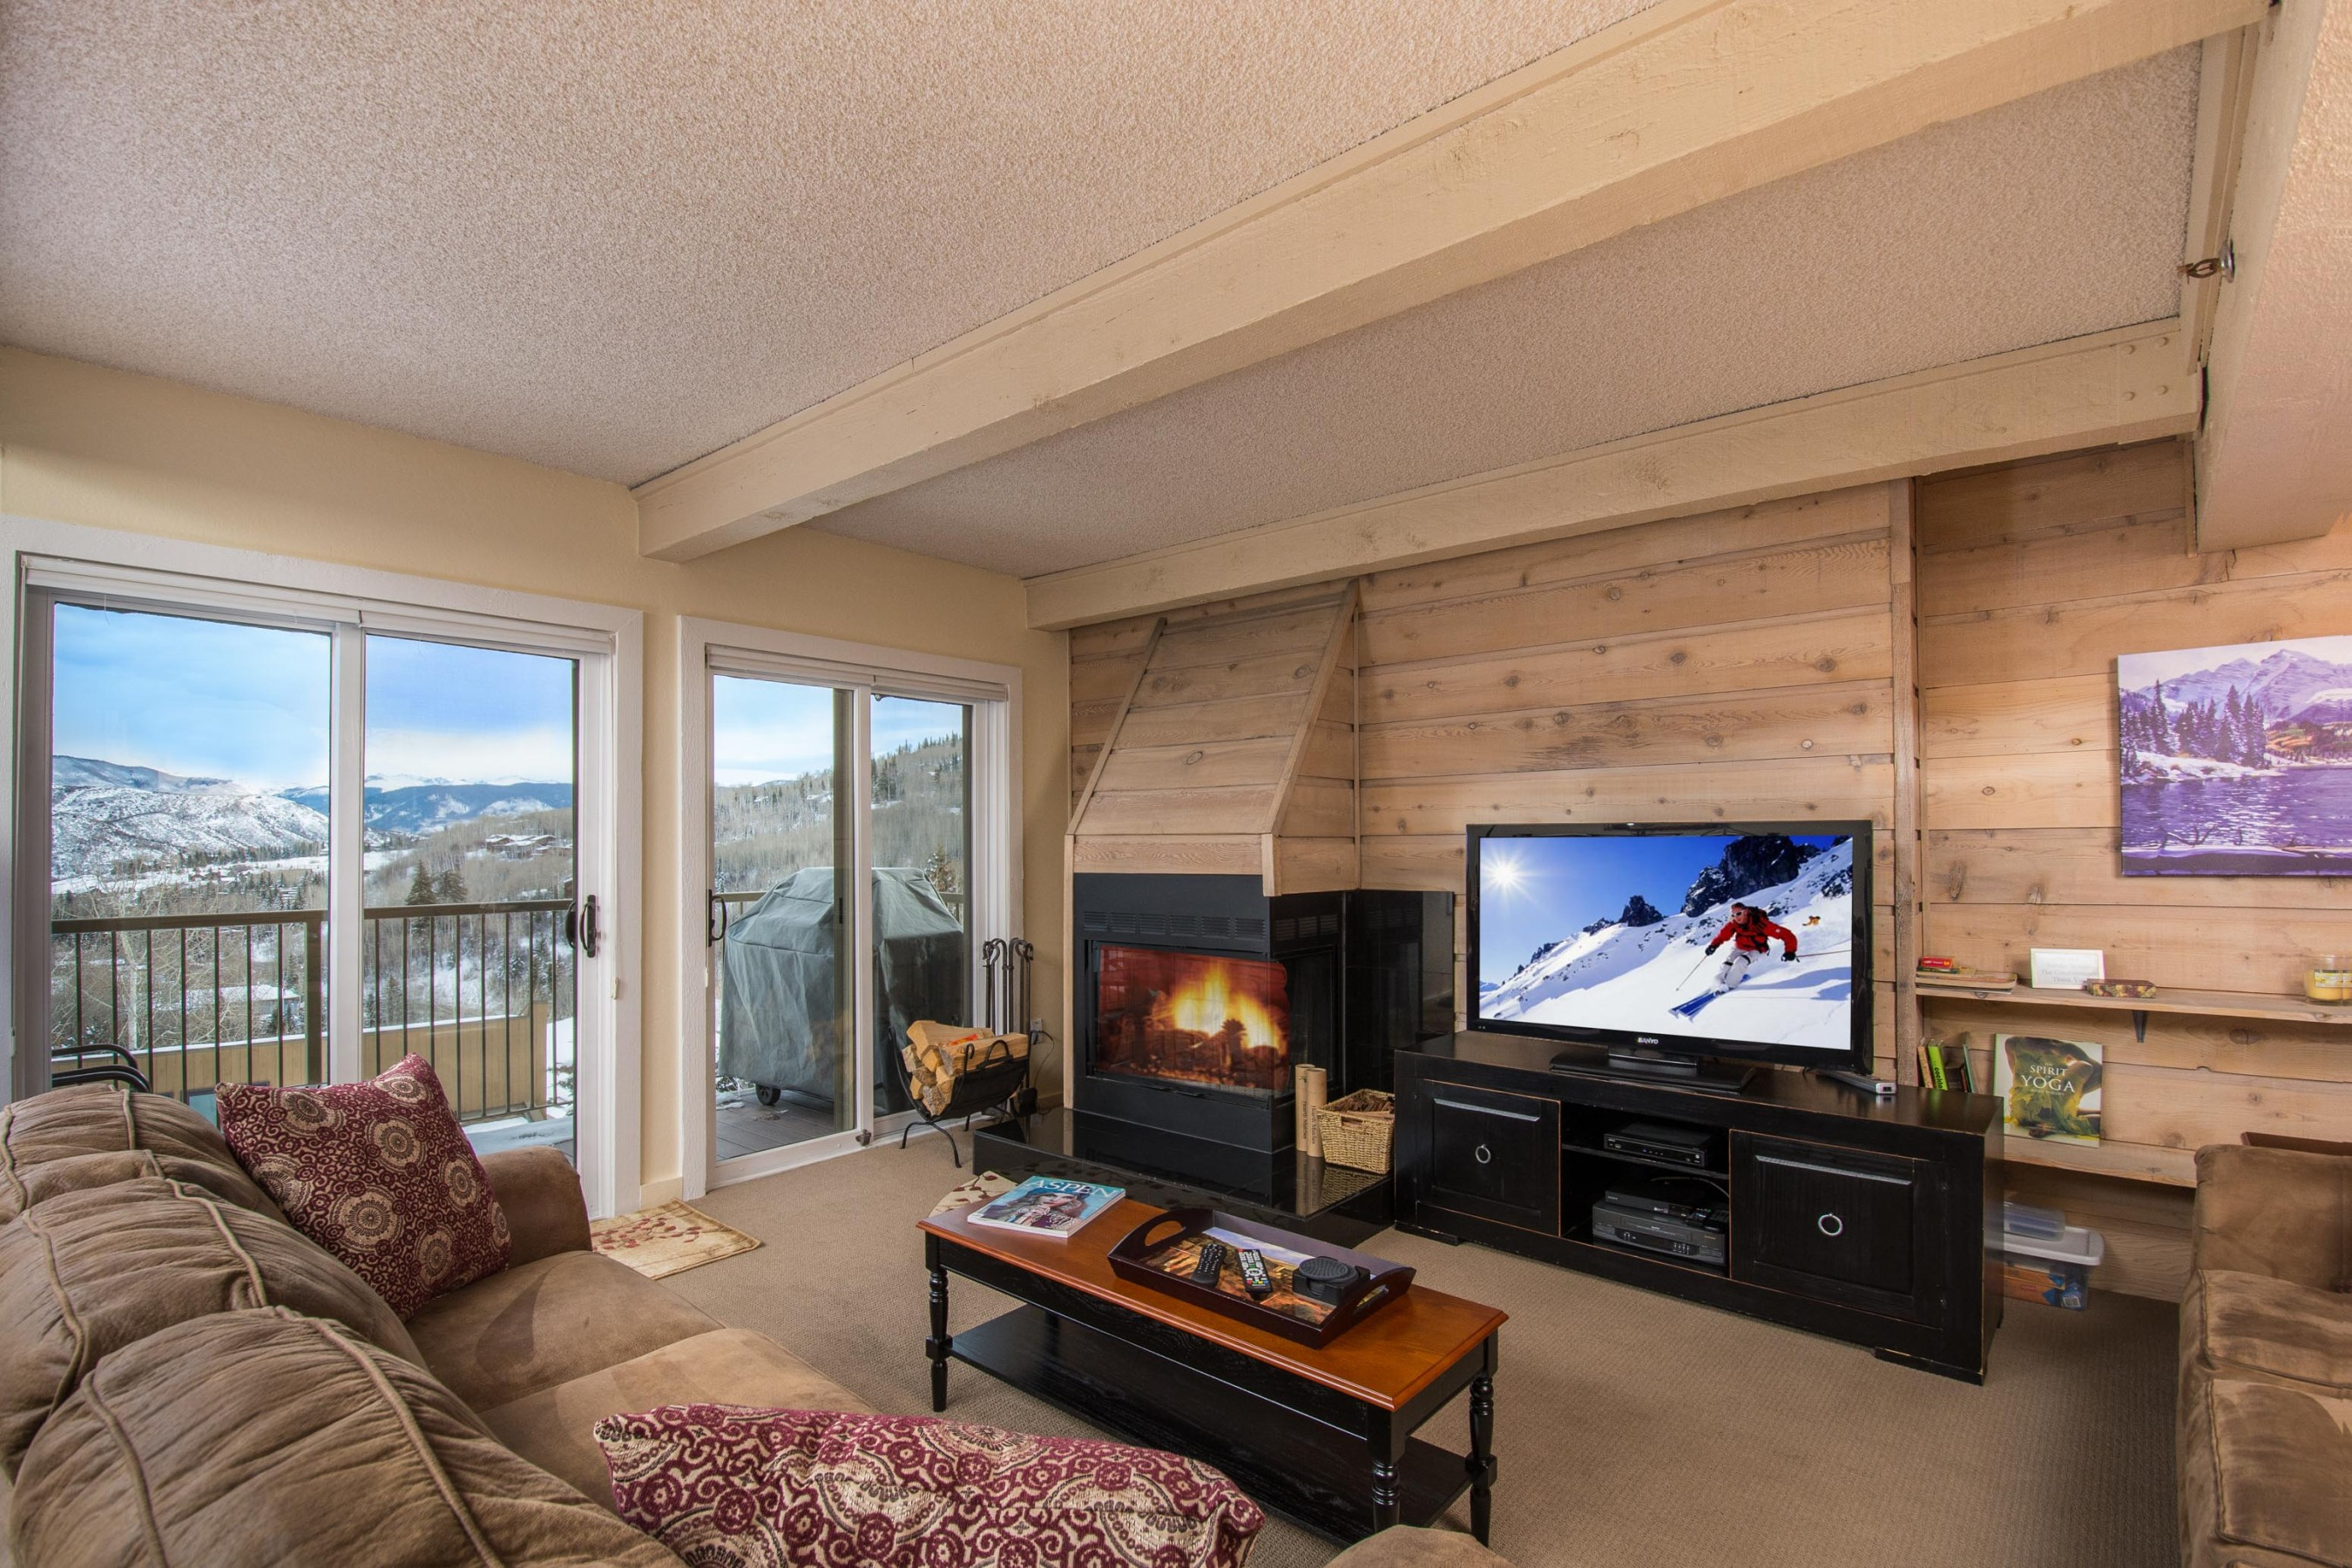 콘도미니엄 용 매매 에 Snowmass Mountain Condominium 55 Upper Woodbridge Road, Unit J-4 Snowmass Village, 콜로라도, 81615 미국